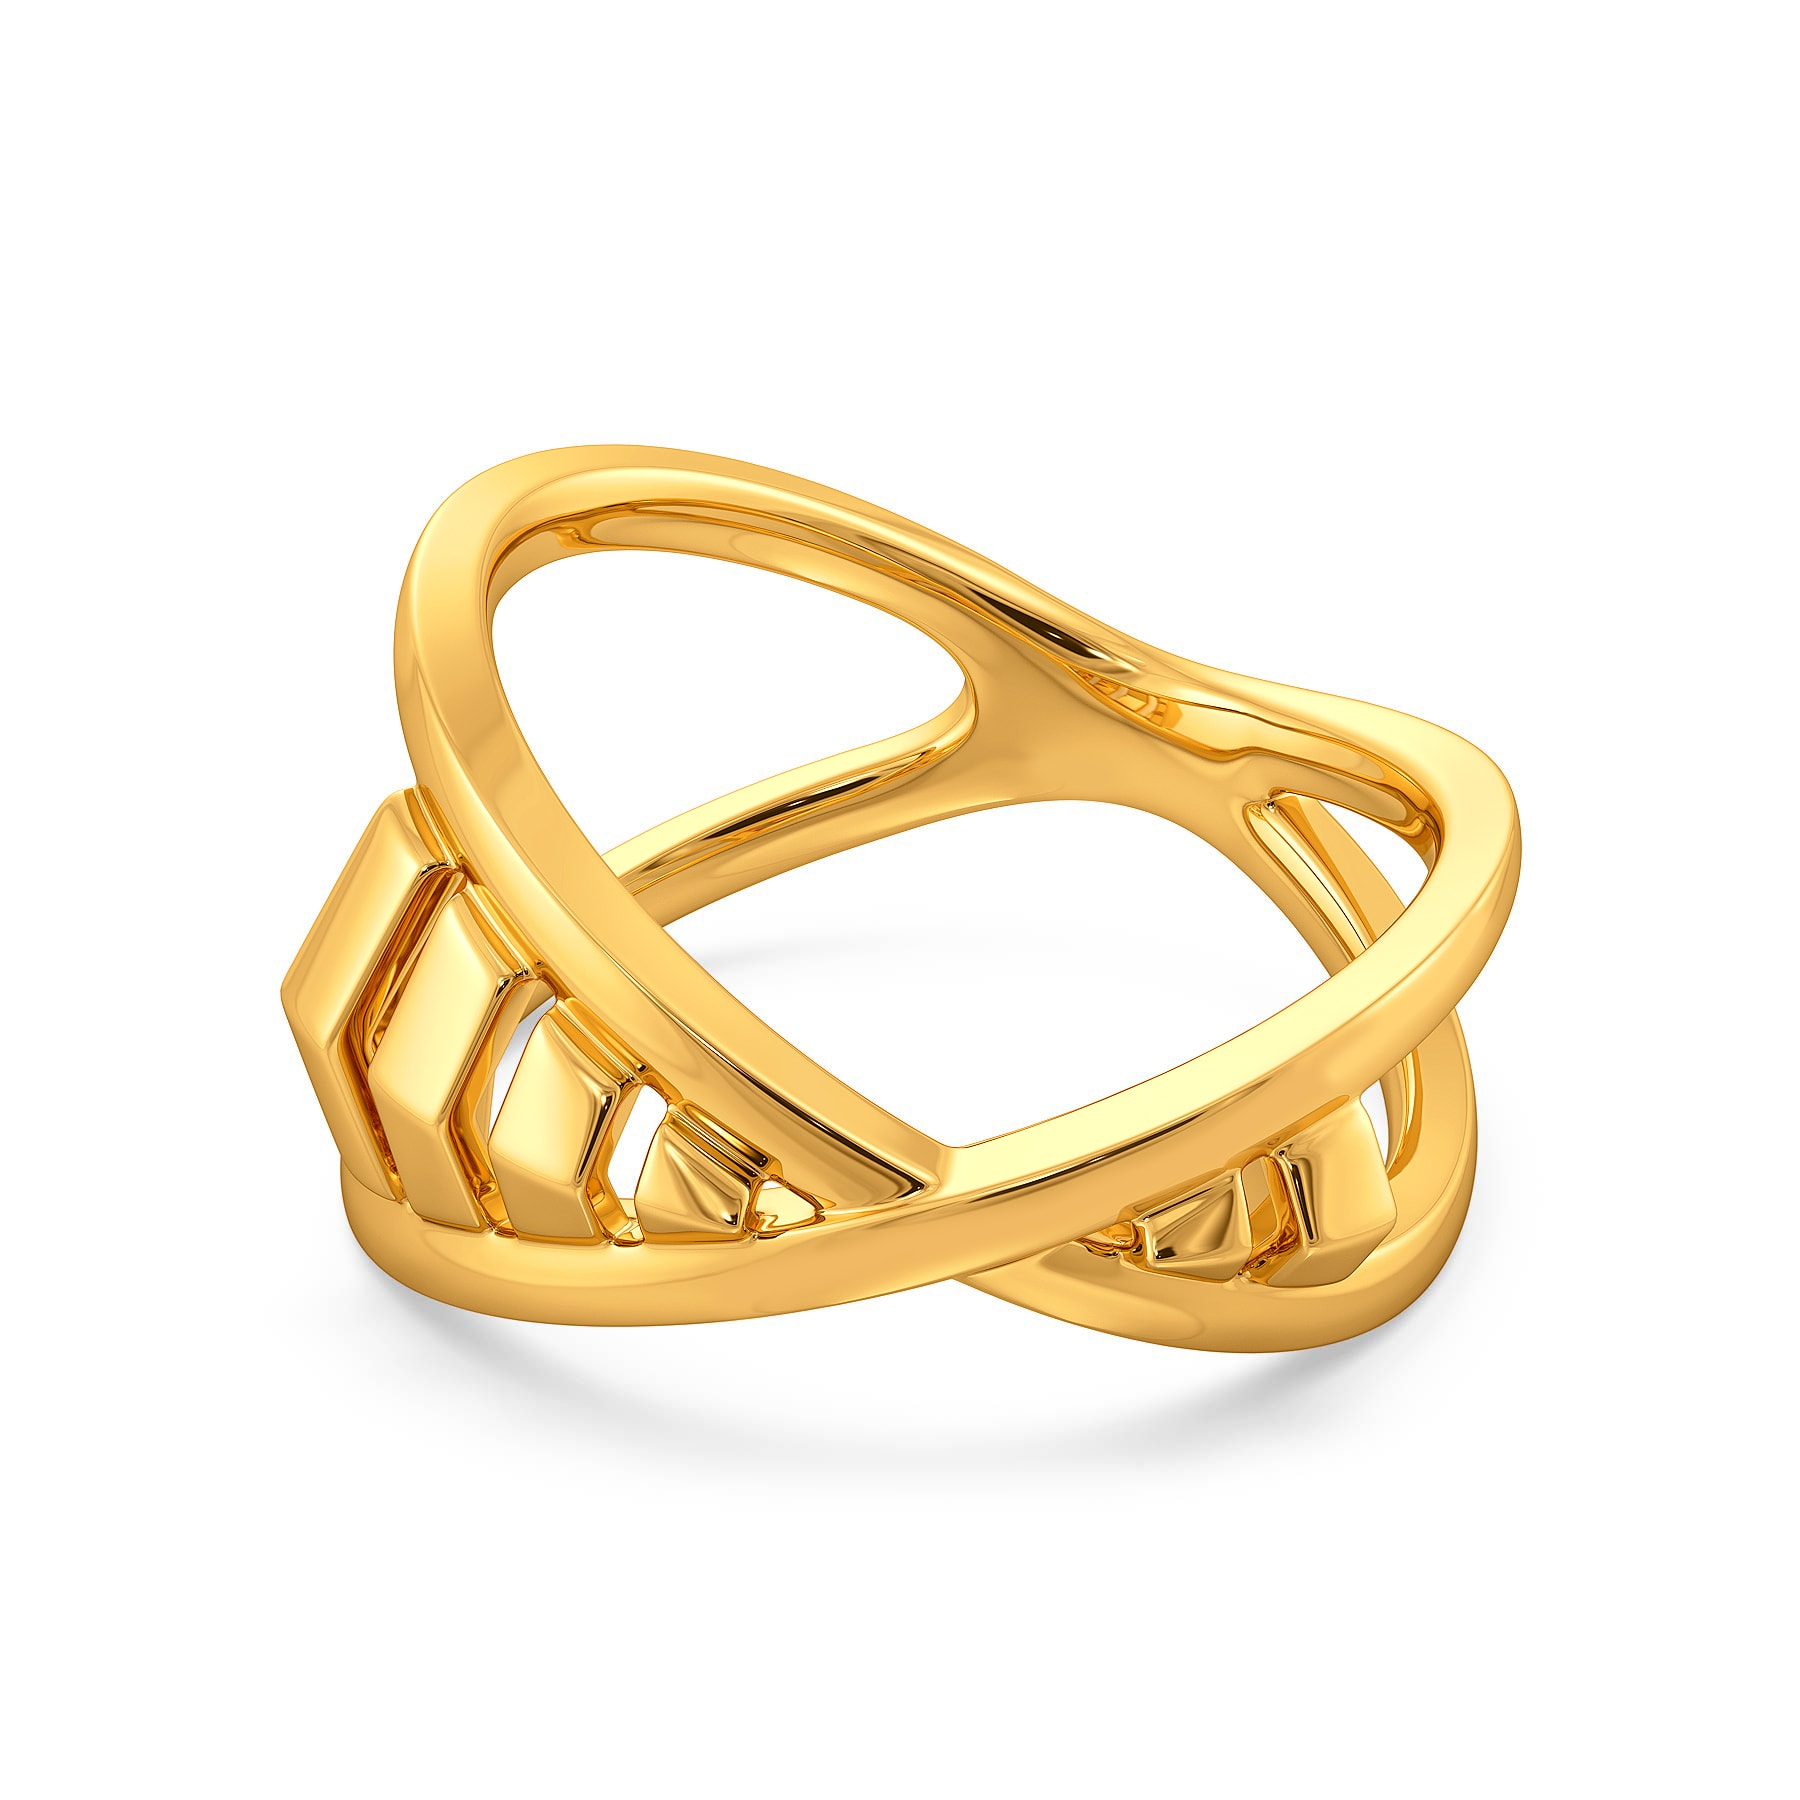 The Boss Lady Gold Rings